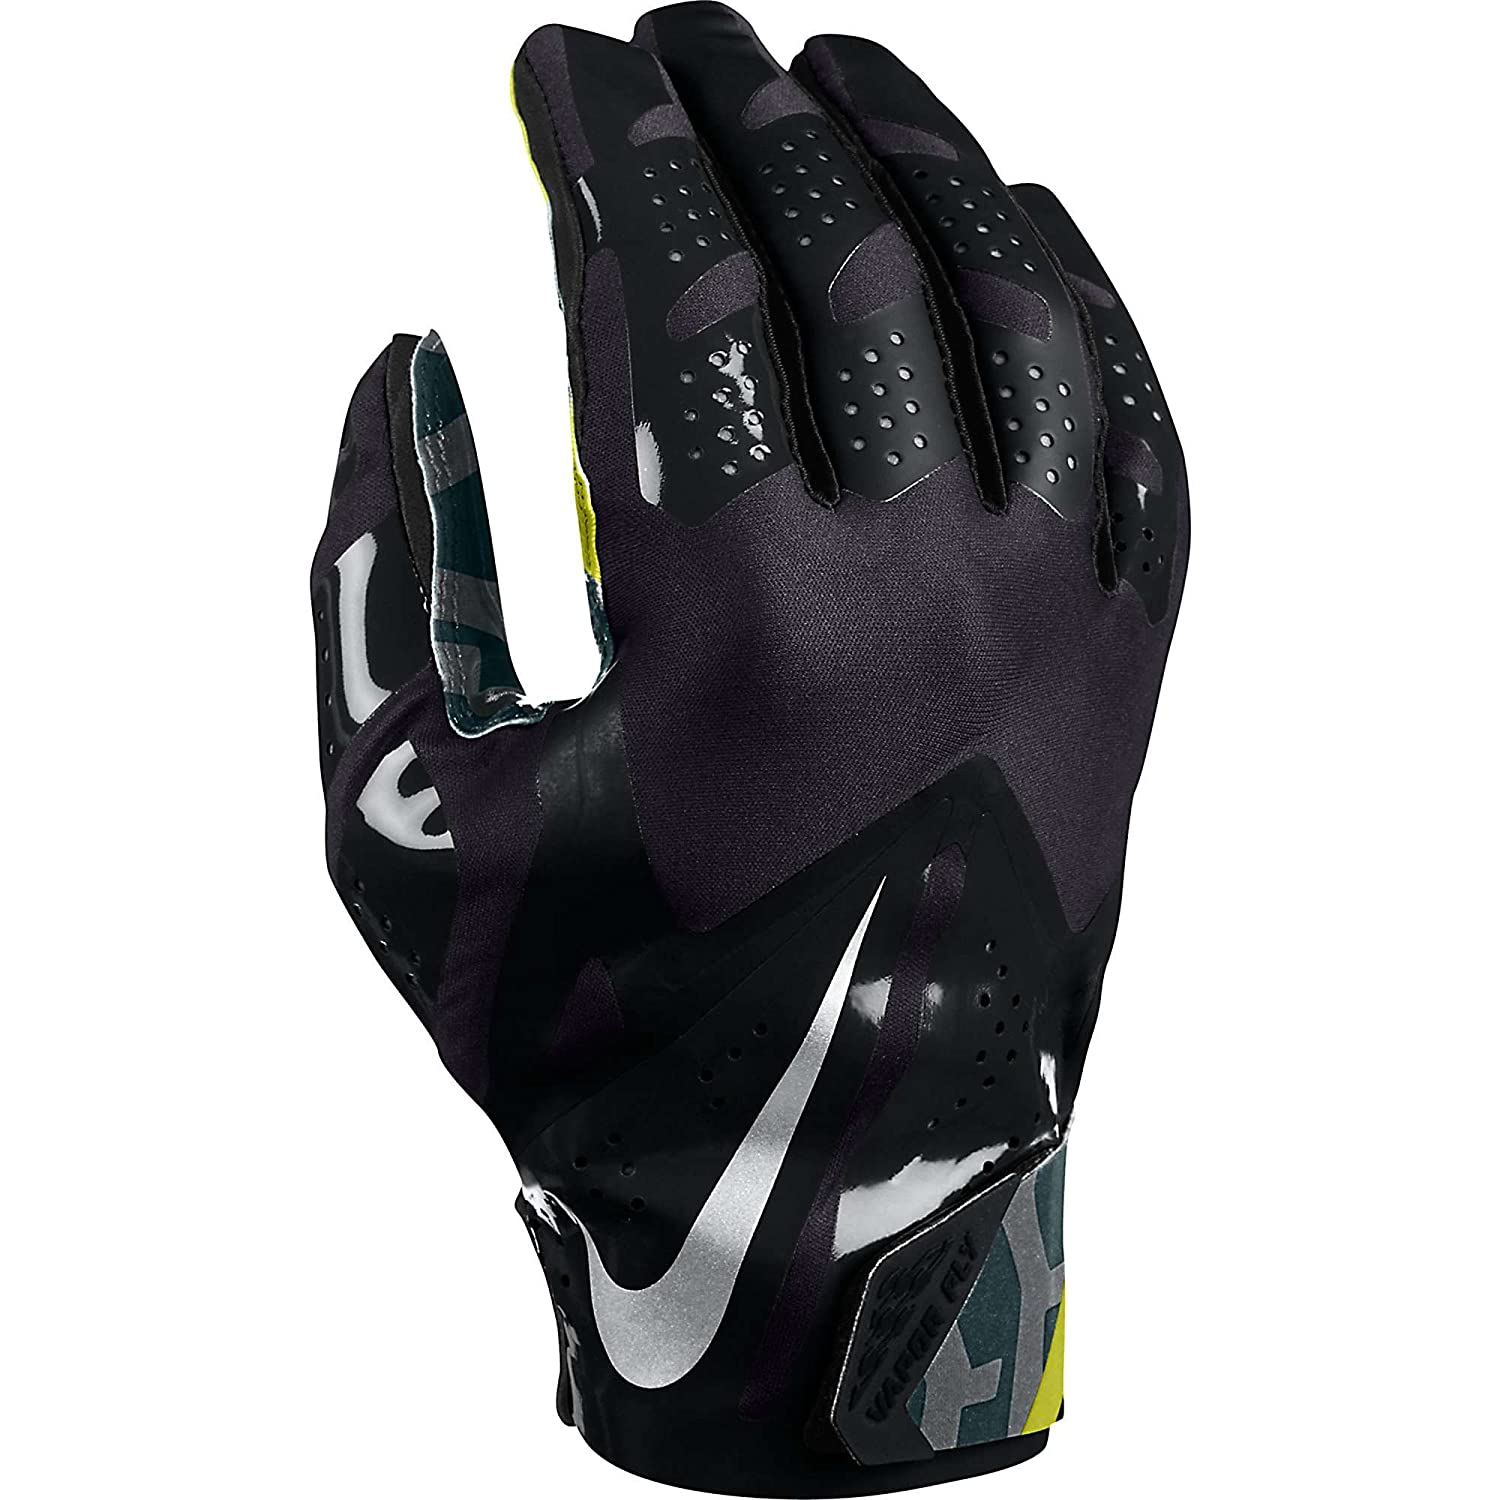 Nike Football Gloves: Men's Nike Vapor Fly Reciever Football Glove